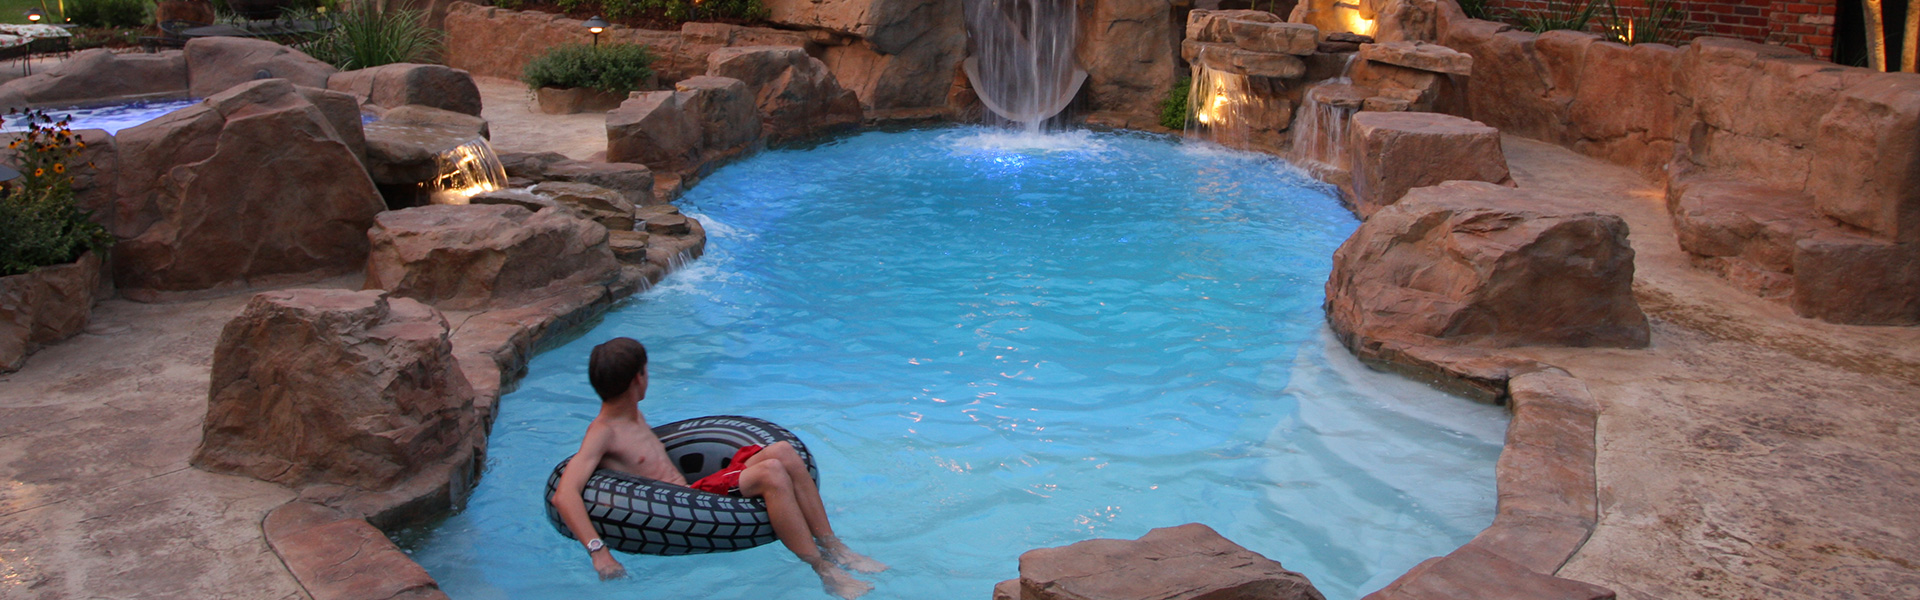 Viking pools sacramento top viking pools sacramento with for Good cheap pools